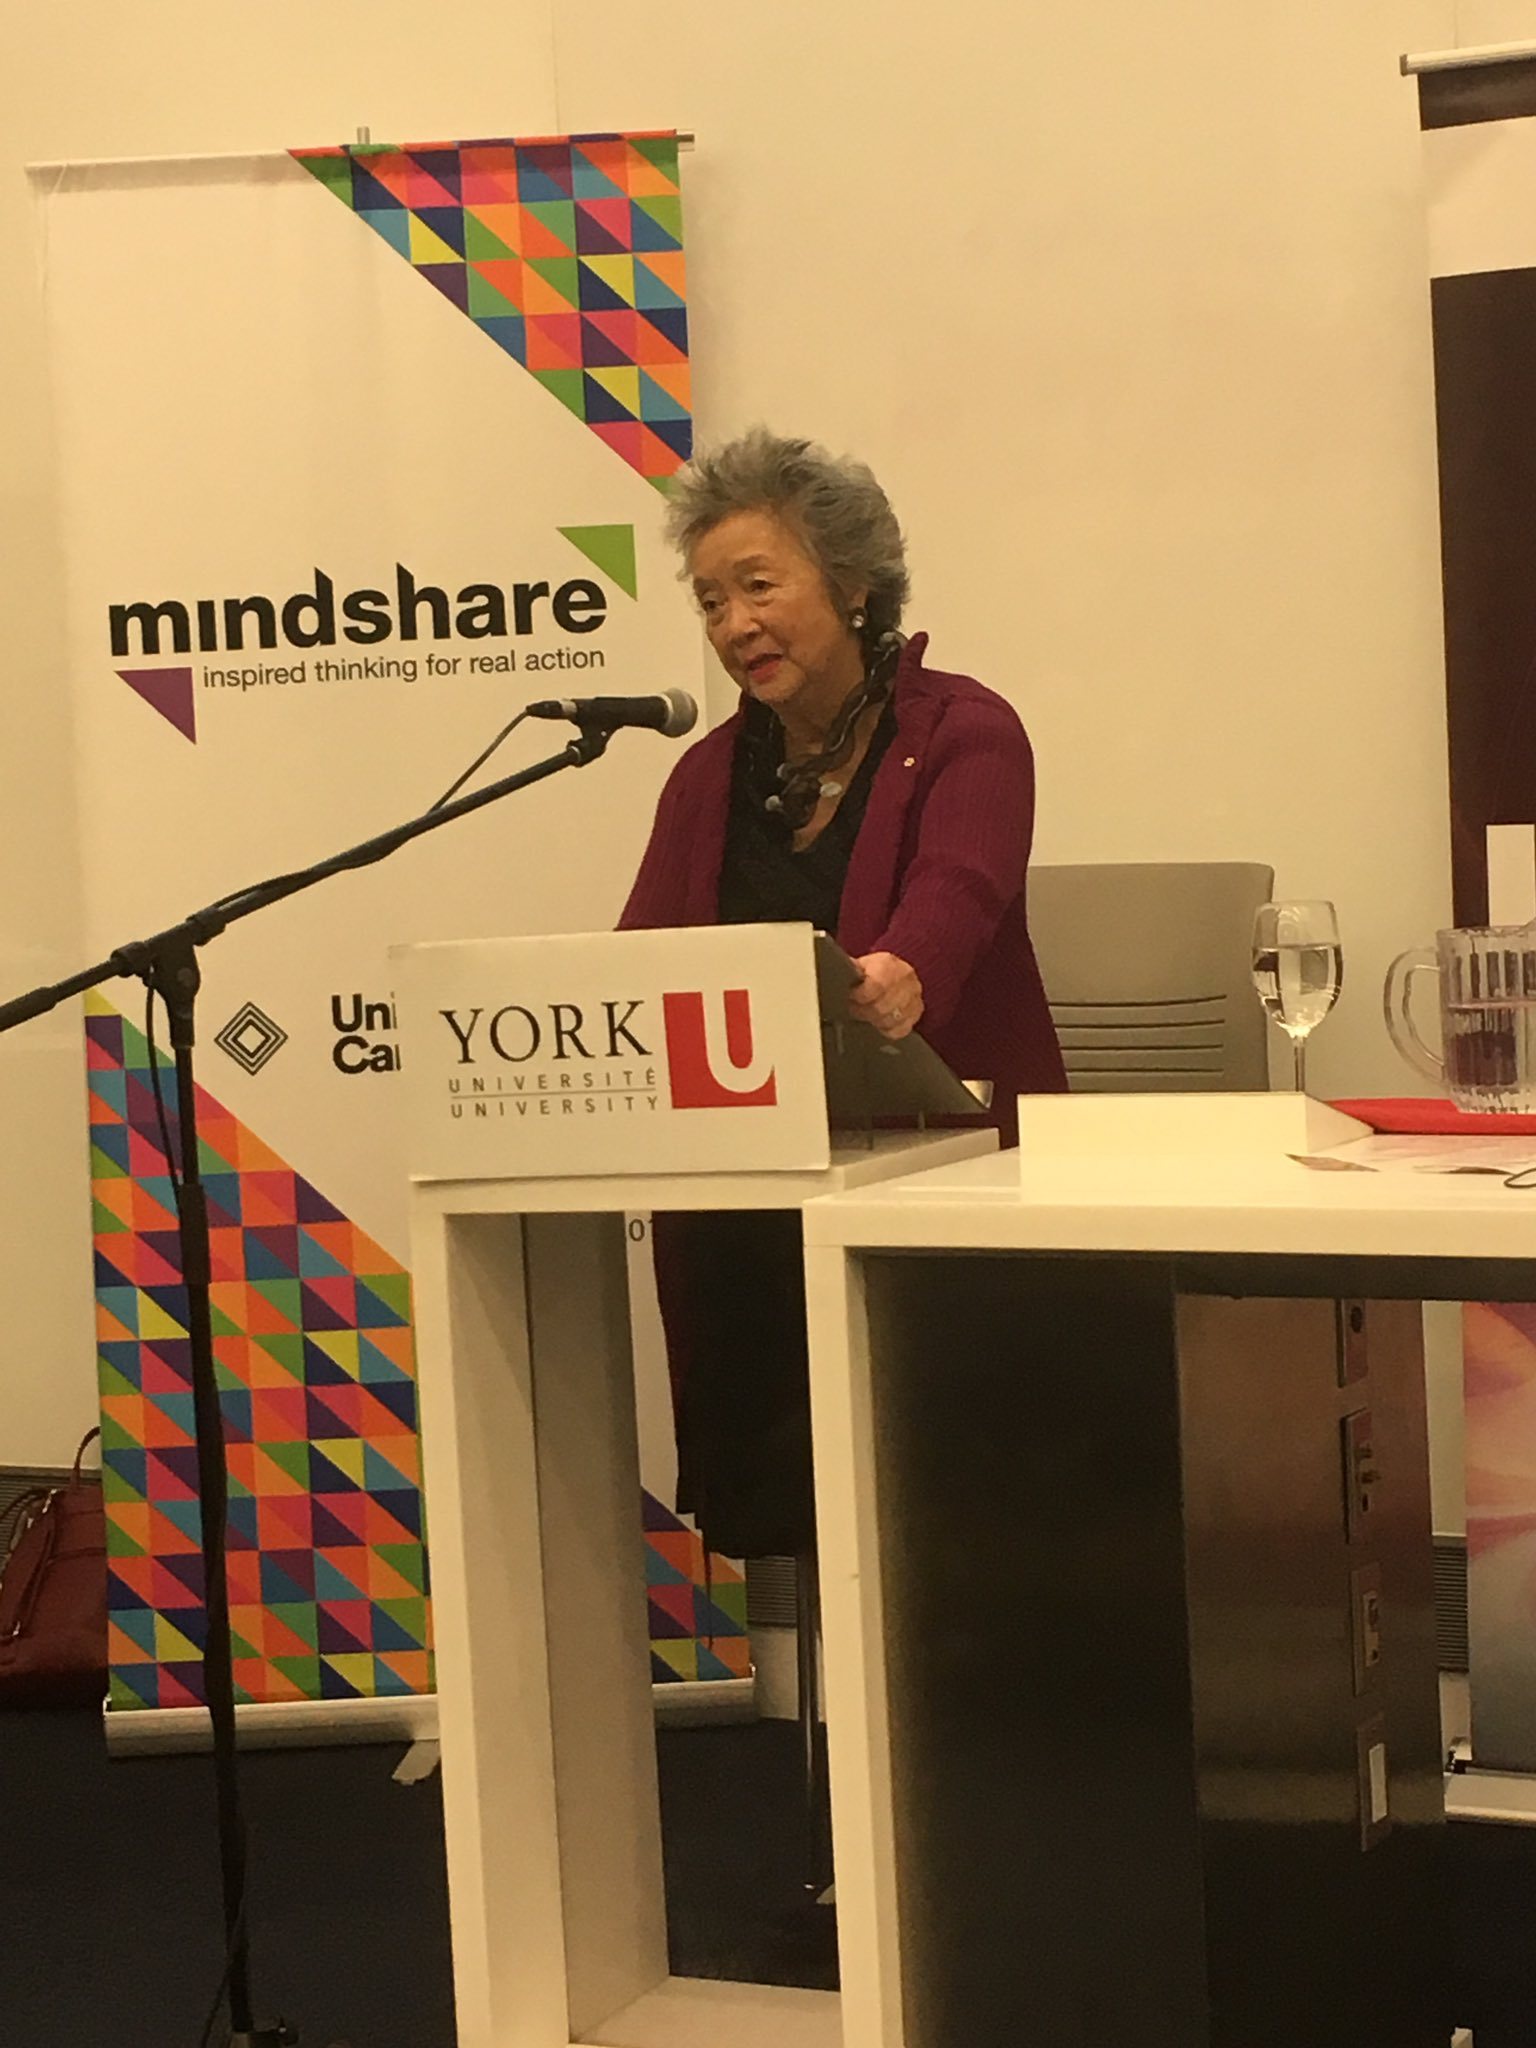 @APClarkson sharing practical suggestions for integration with dignity #Mindshare2016 @yorkuniversity https://t.co/Ob1mnEj4MA